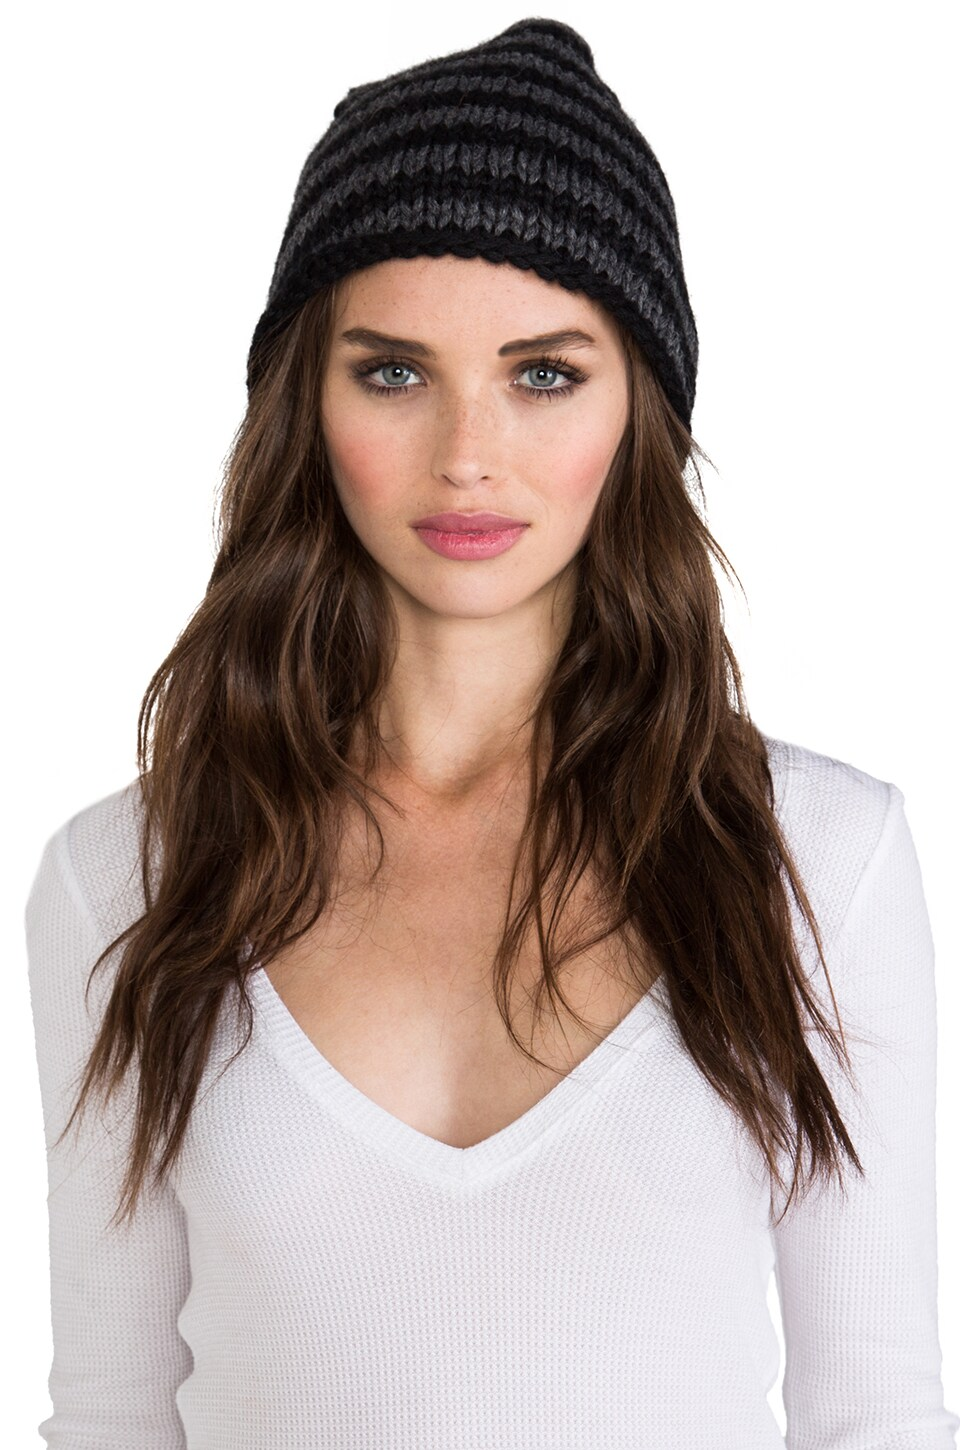 DE NADA Beanie Knit in Black/Charcoal